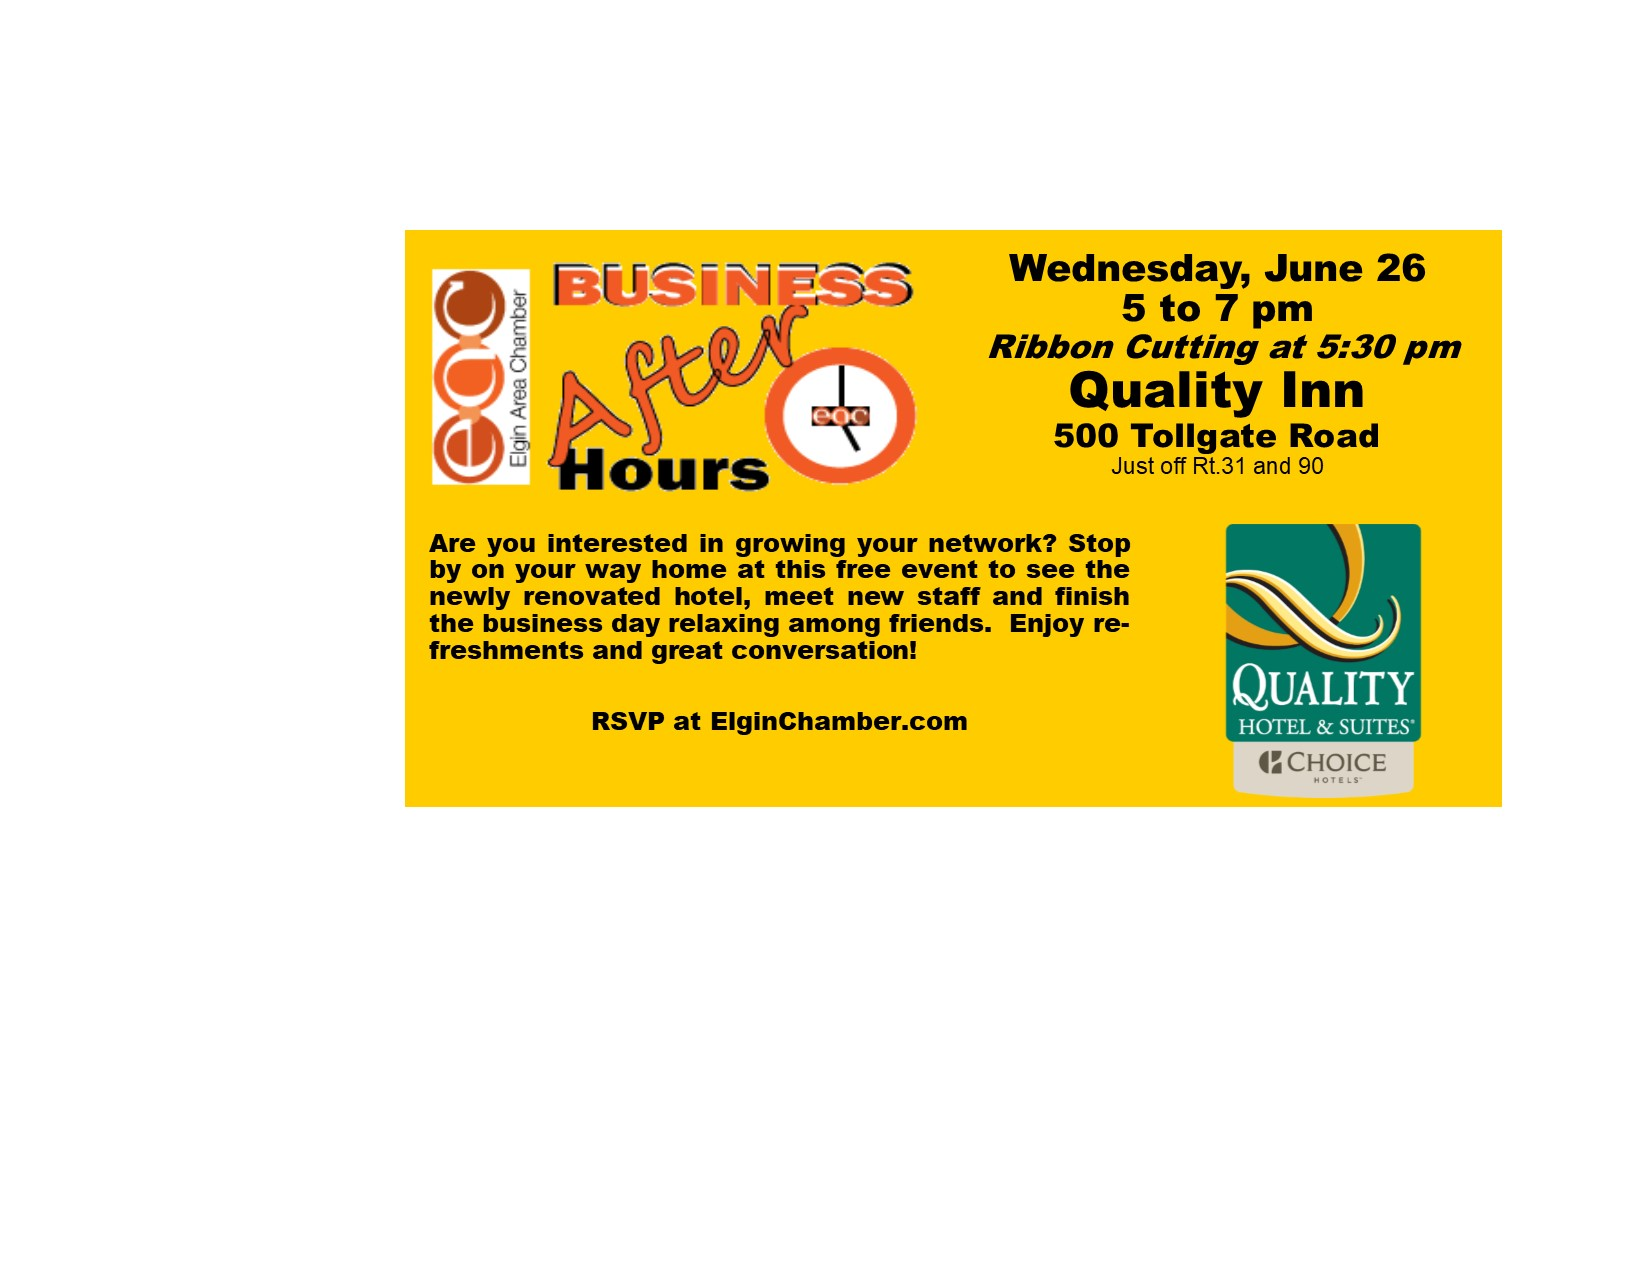 Business After Hours at Quality Inn - Jun 26, 2019 - Elgin